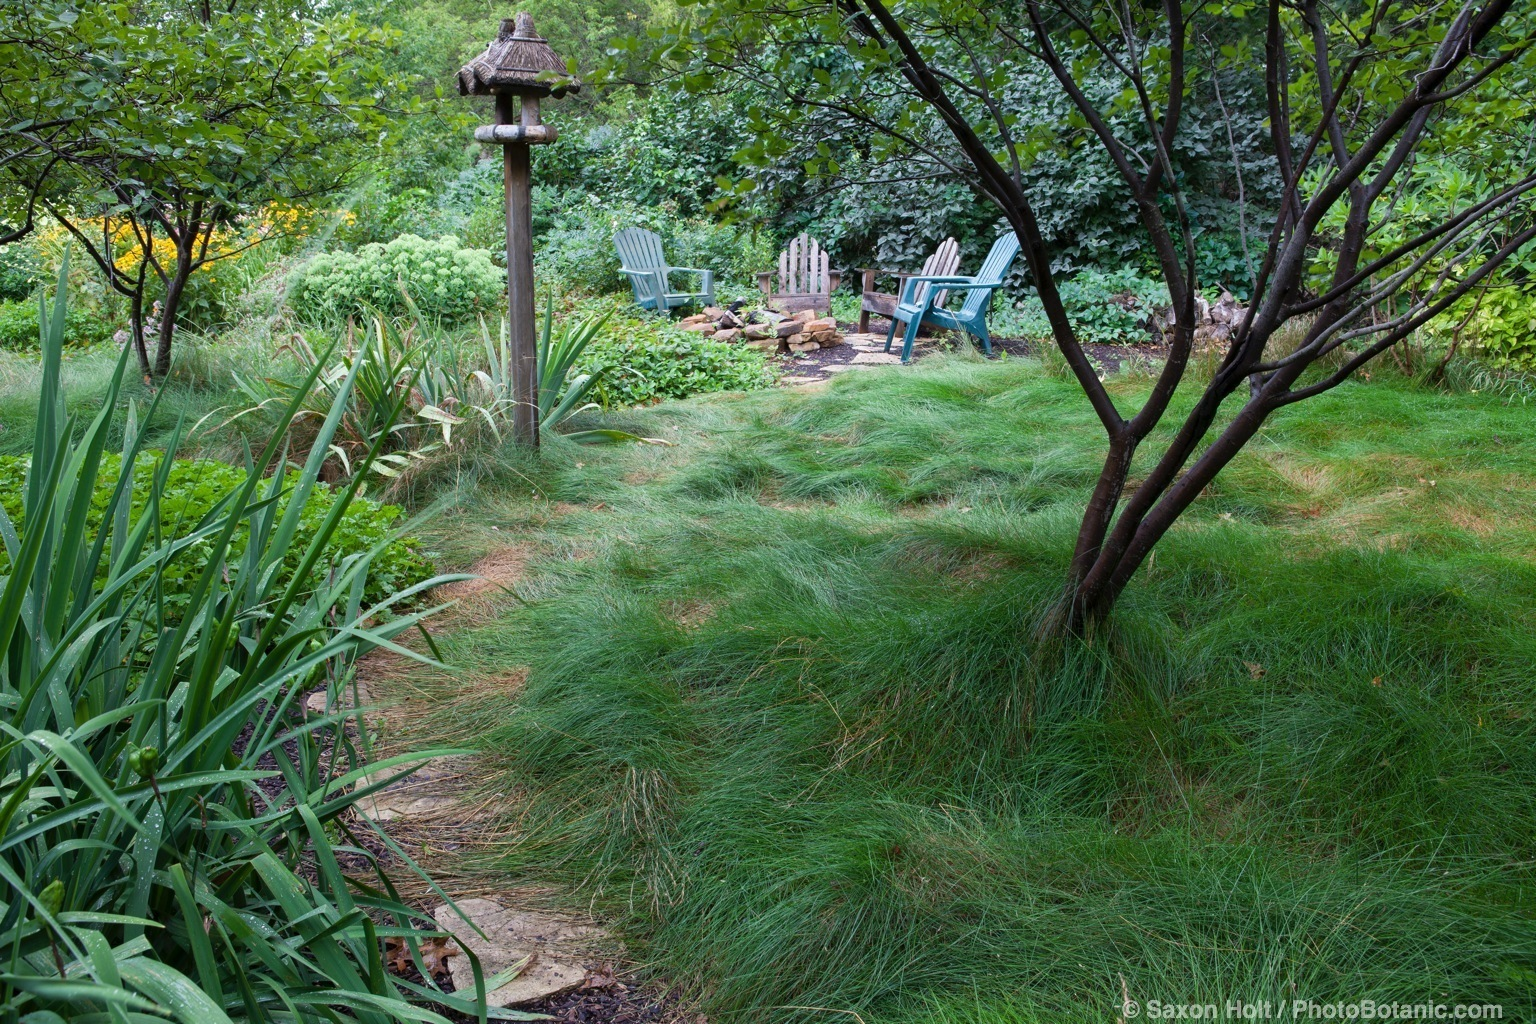 Lawn substitute, no mow fescue meadow with path leading to seating area past bird house, Minnesota garden